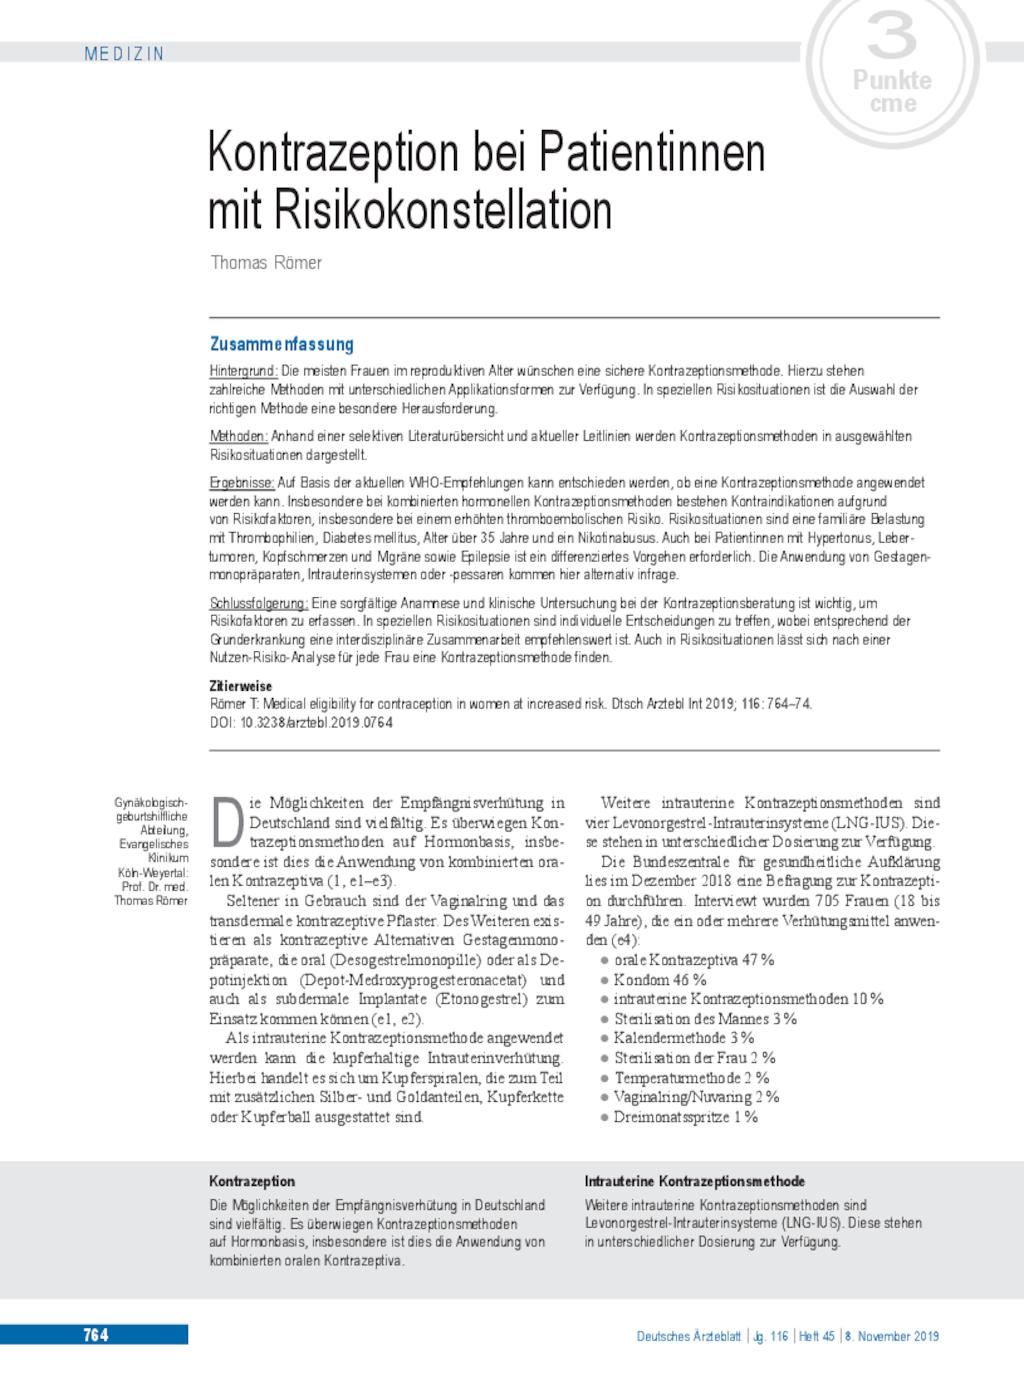 Kontrazeption bei Patientinnen mit Risikokonstellation